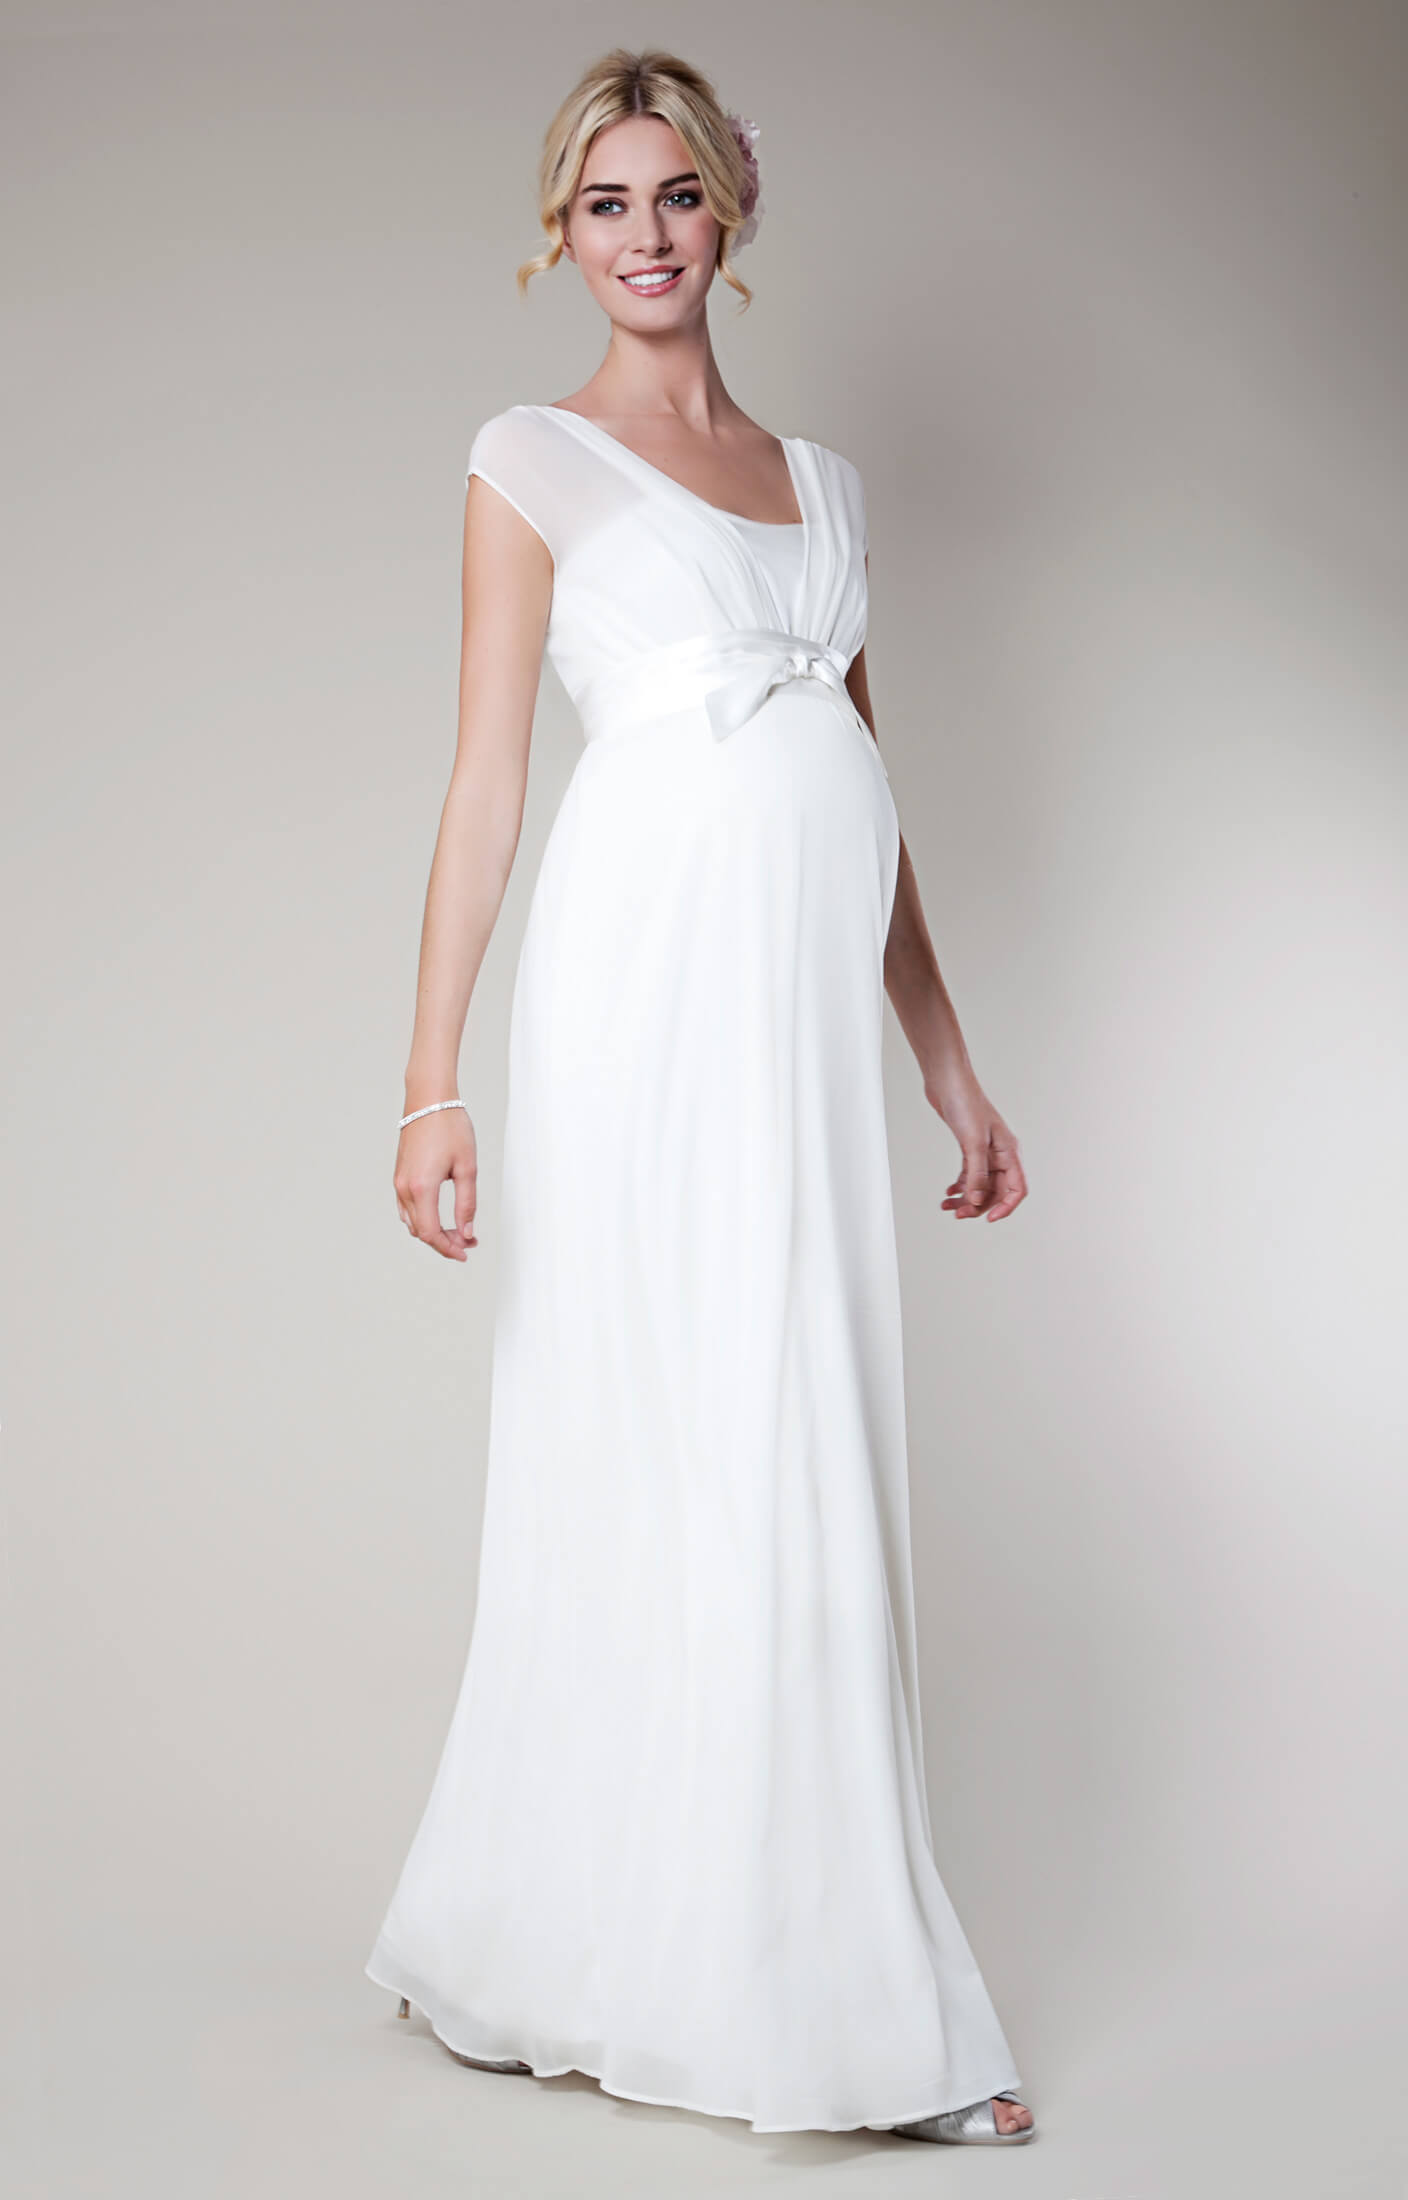 Lily Silk Maternity Wedding Gown Long (Ivory) silk wedding dresses Lily Silk Maternity Wedding Gown Long Ivory by Tiffany Rose